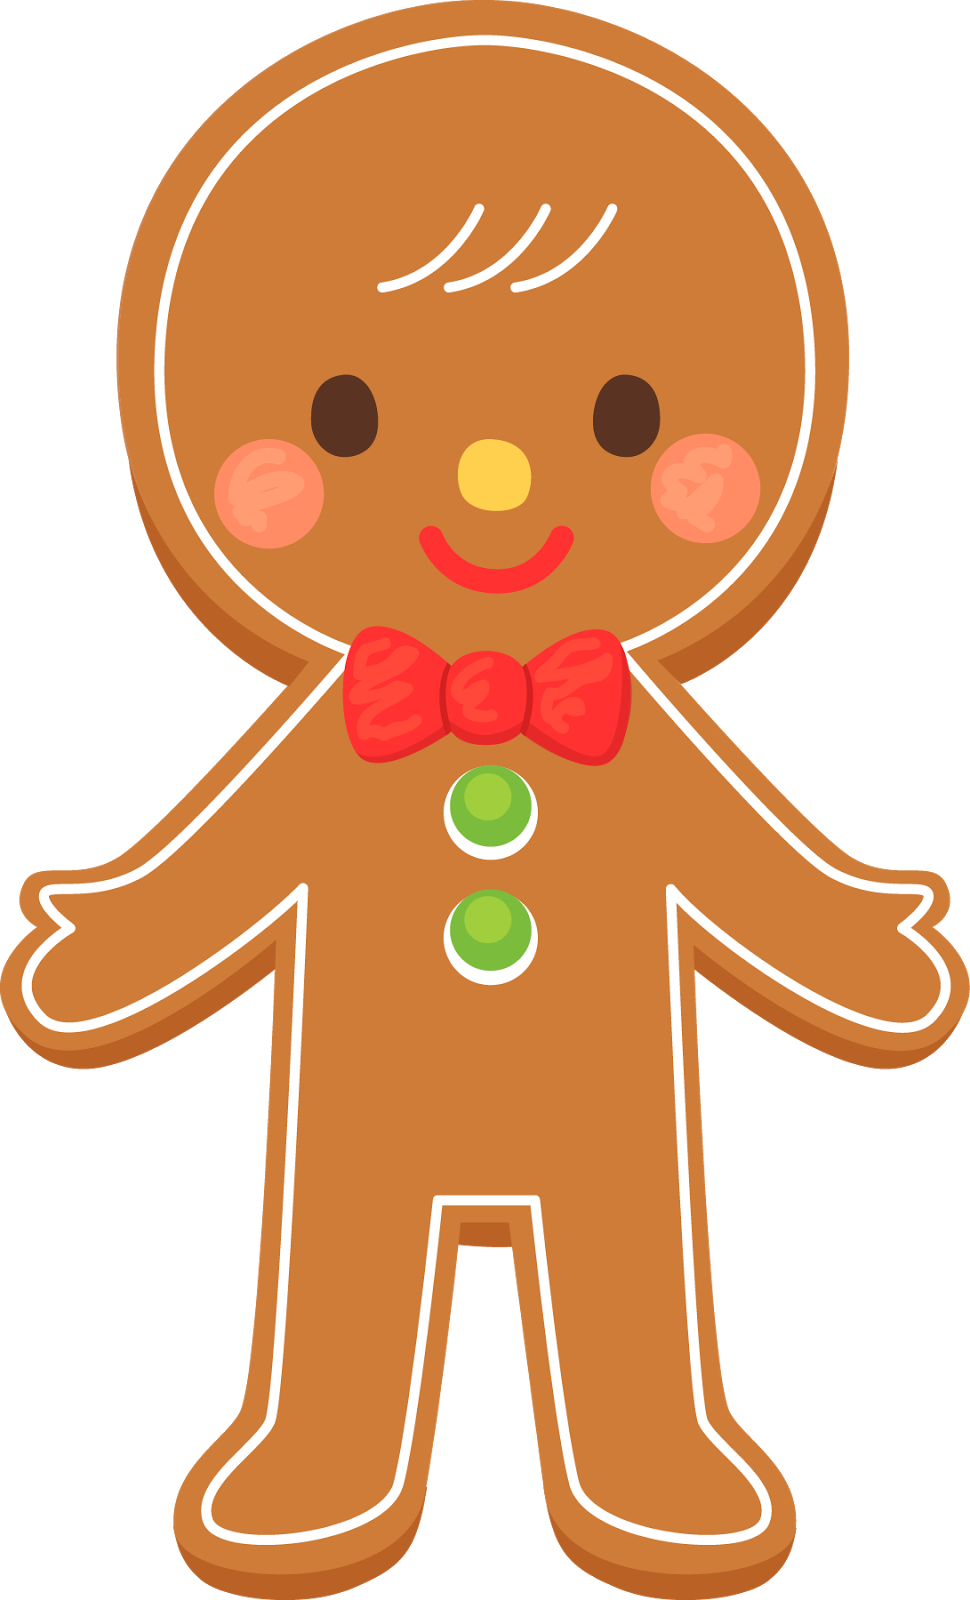 Gingerbread clipart #14